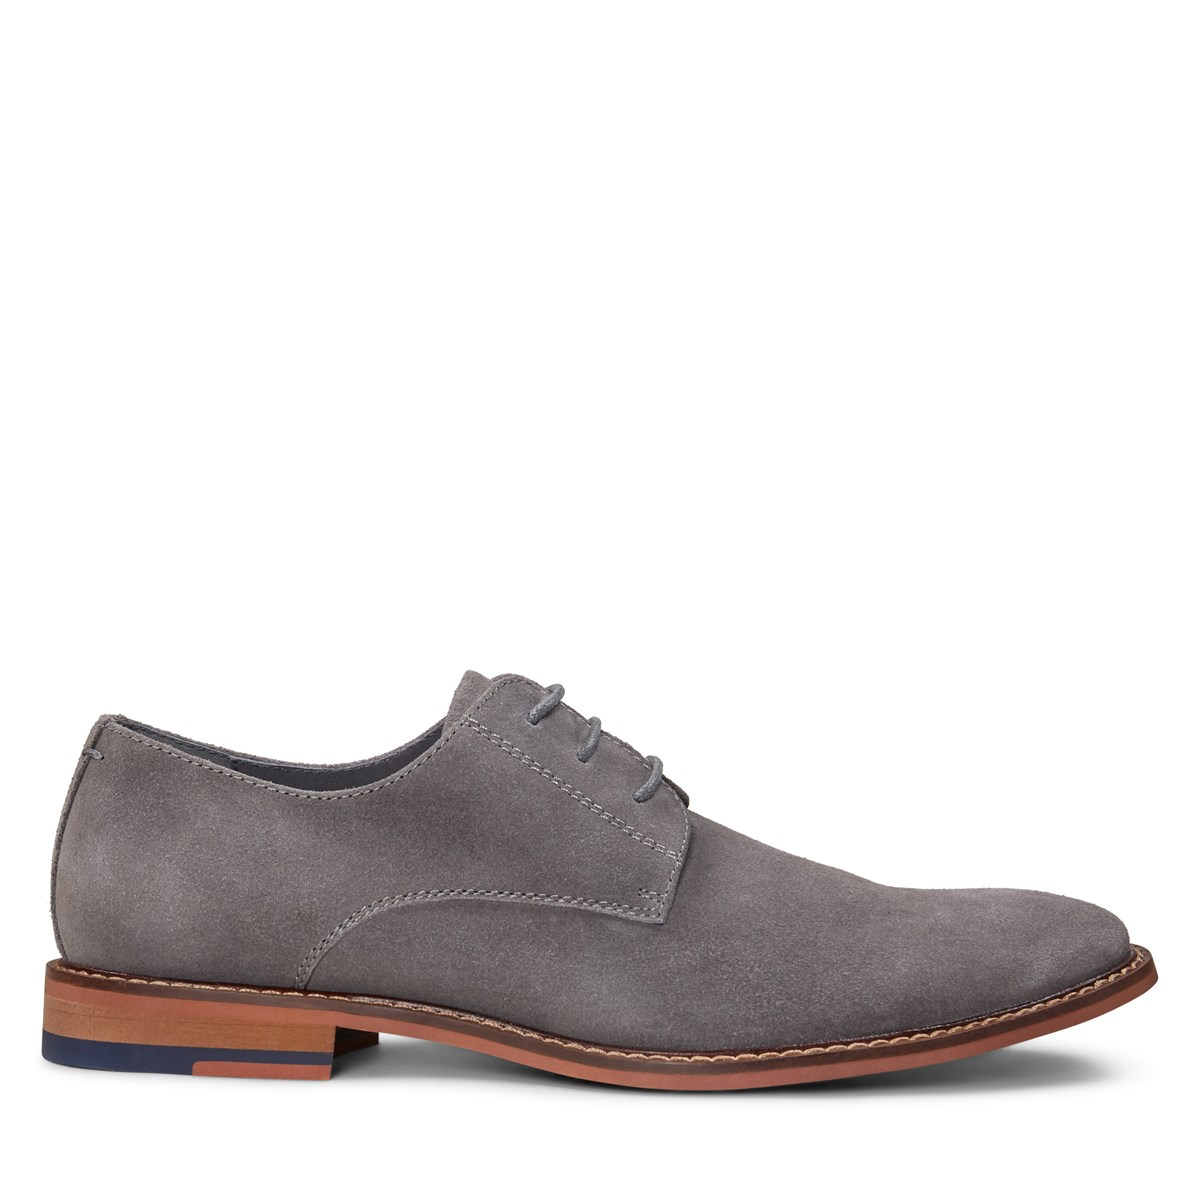 Men's Alberto Lace-Up Shoe in Grey Suede